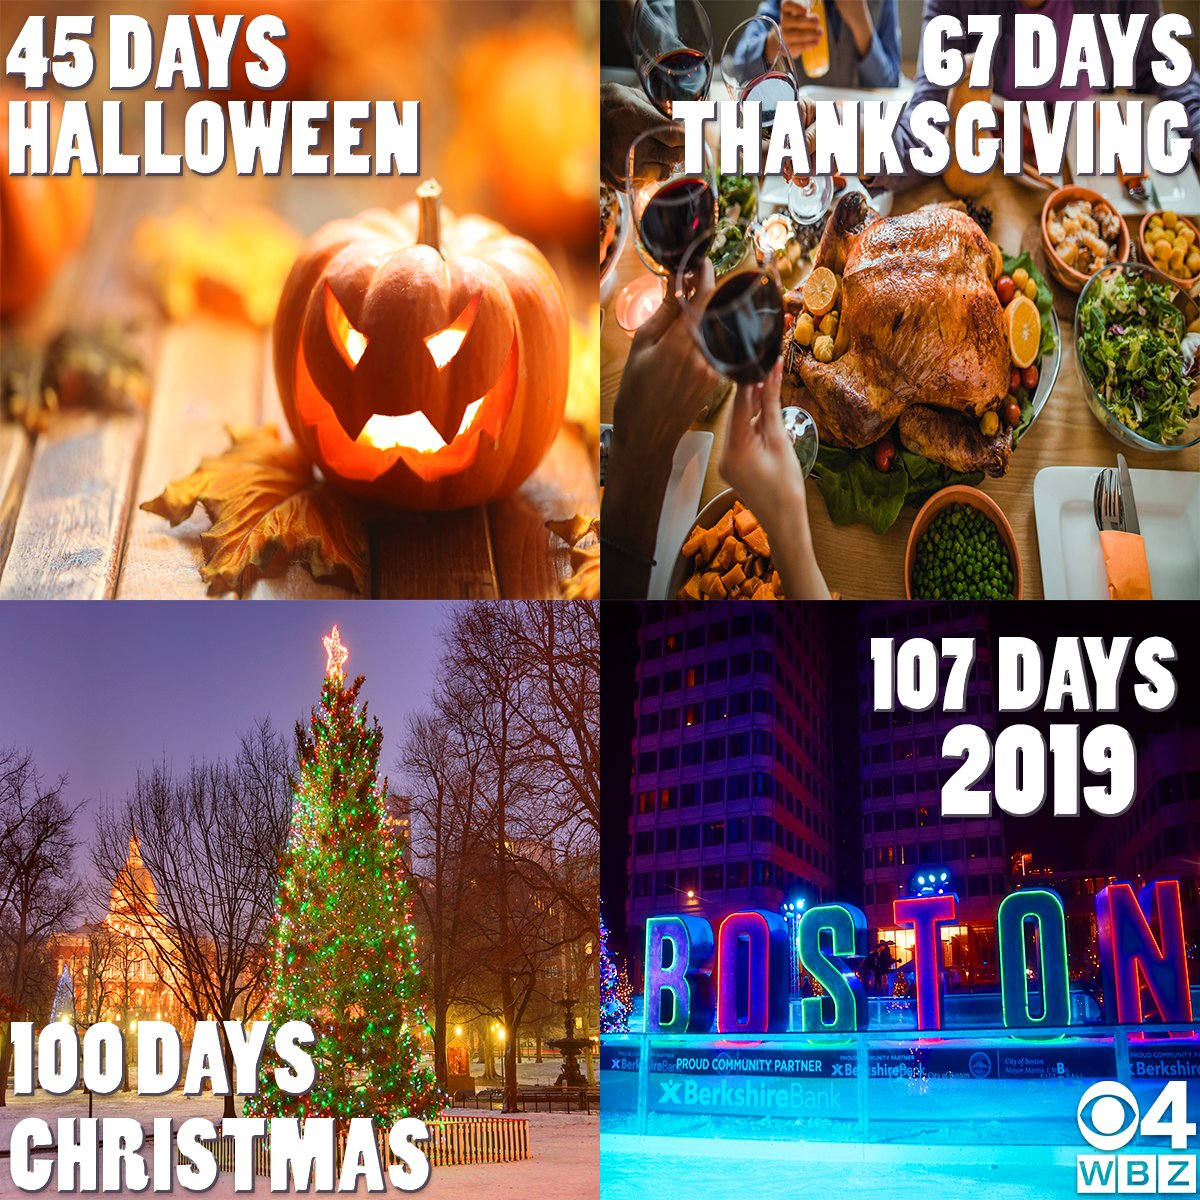 Days Until Christmas 2019.Wbz Cbs Boston News On Twitter Ready To Get In The